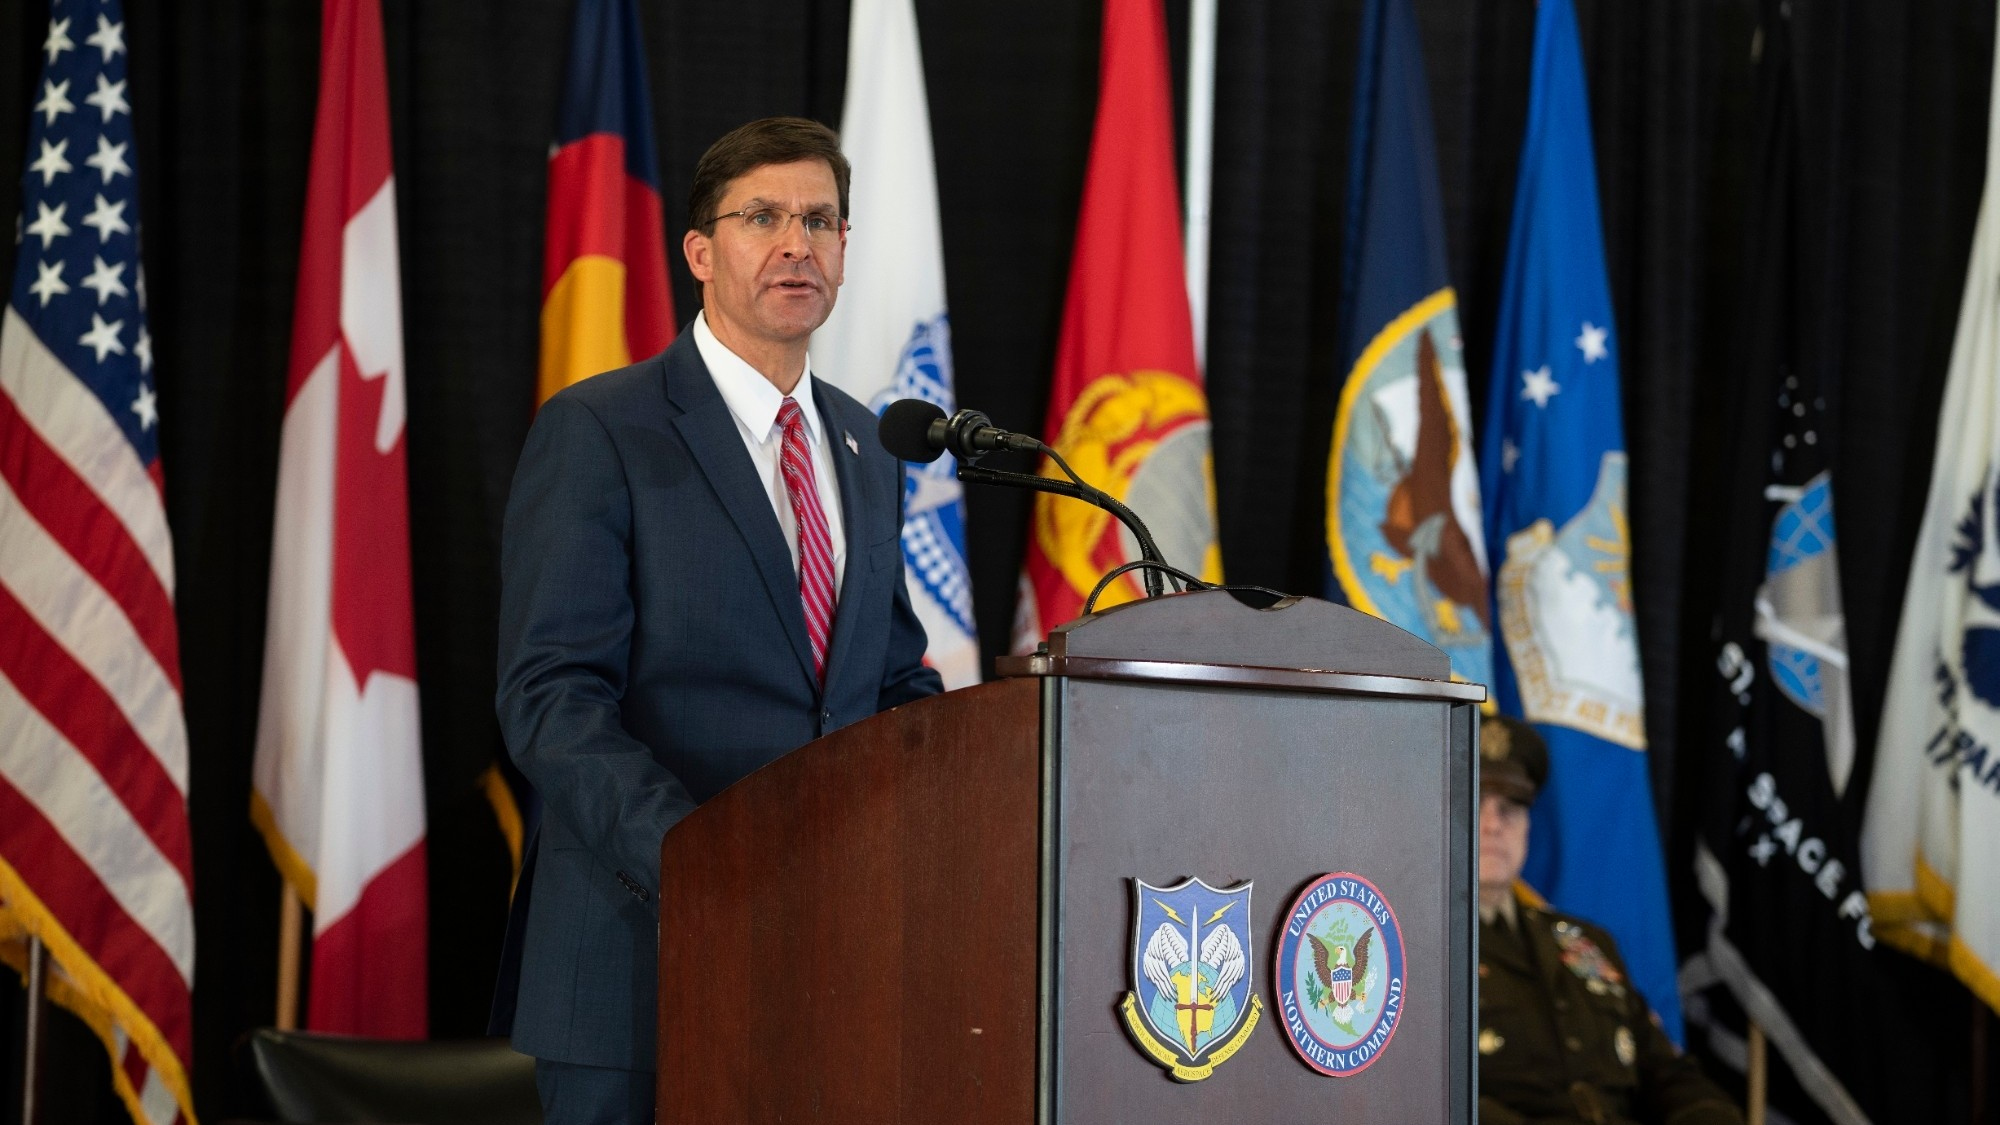 U.S. Secretary of Defense Dr. Mark T. Esper speaks to the men and women of the North American Aerospace Defense Command